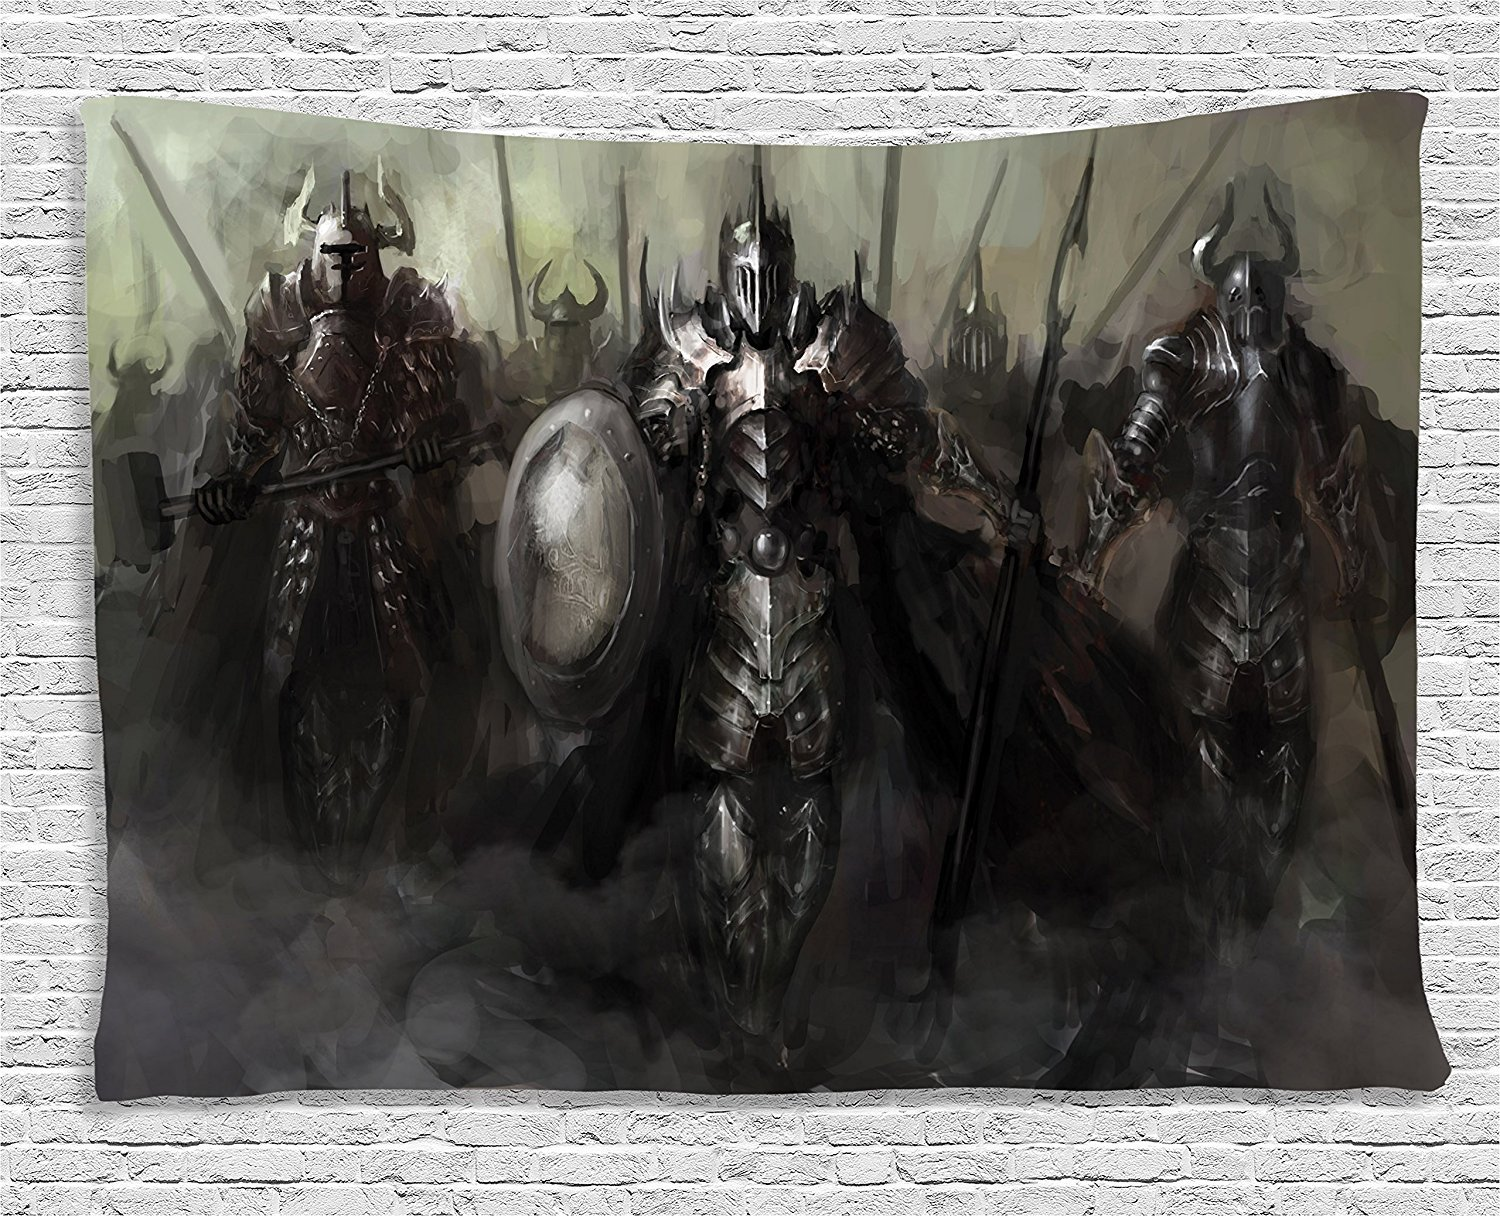 Ambesonne Fantasy World Decor Collection, General Leading His Army against the Enemy Evil Divine Power Nether World Soldiers Print, Bedroom Living Room Dorm Wall Hanging Tapestry, 80 X 60 Inches, Grey